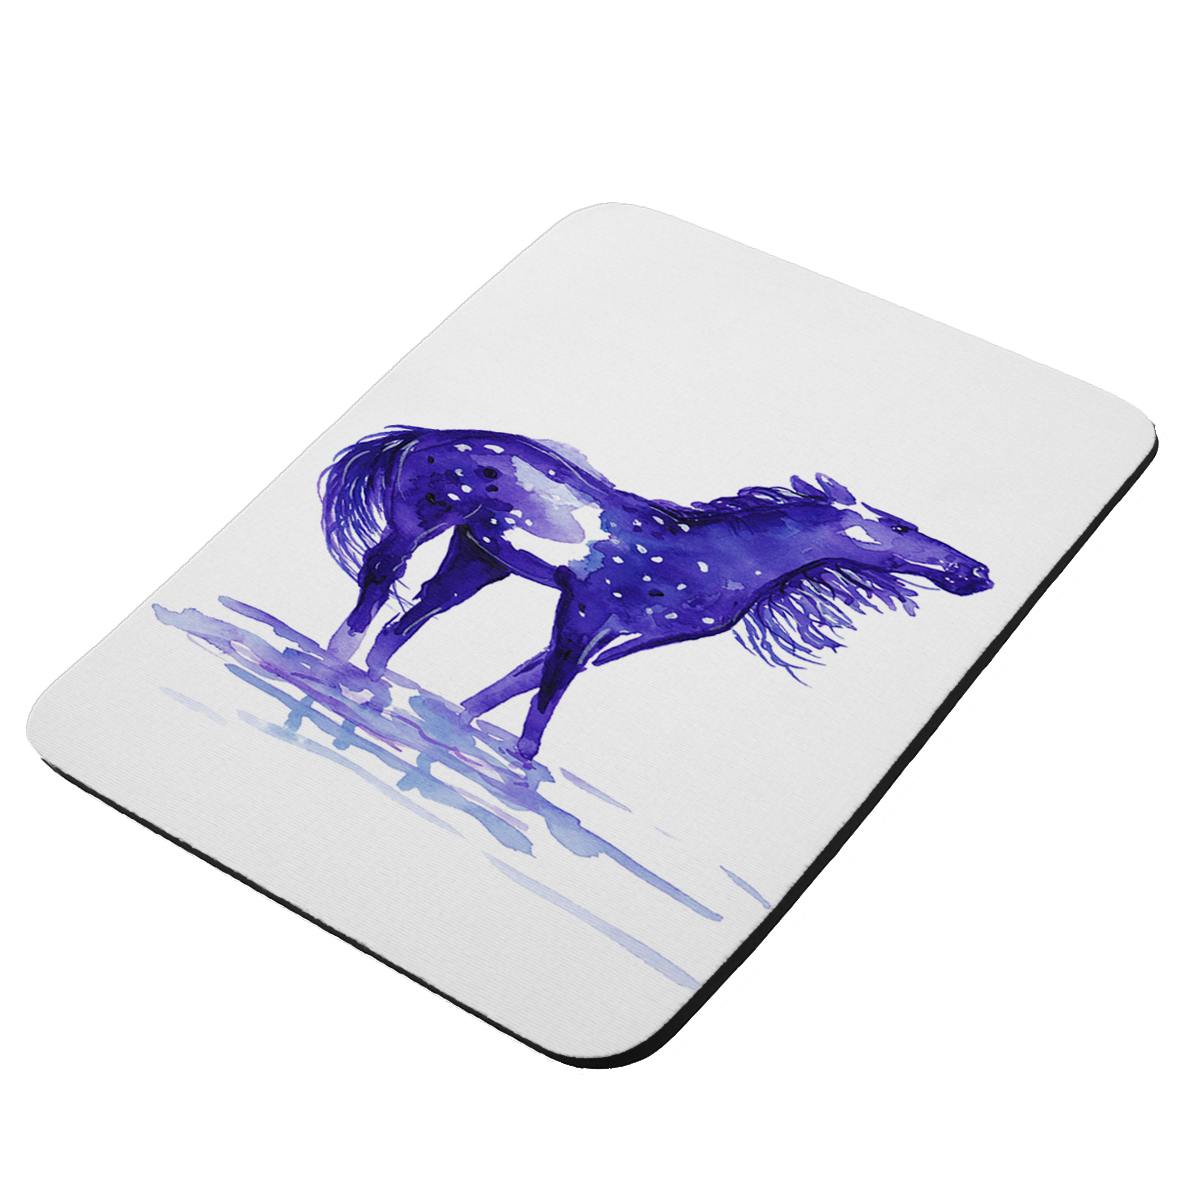 Abstract Snowflake Appaloose in Purple Horse Art by Denise Every - KuzmarK Mousepad / Hot Pad / Trivet